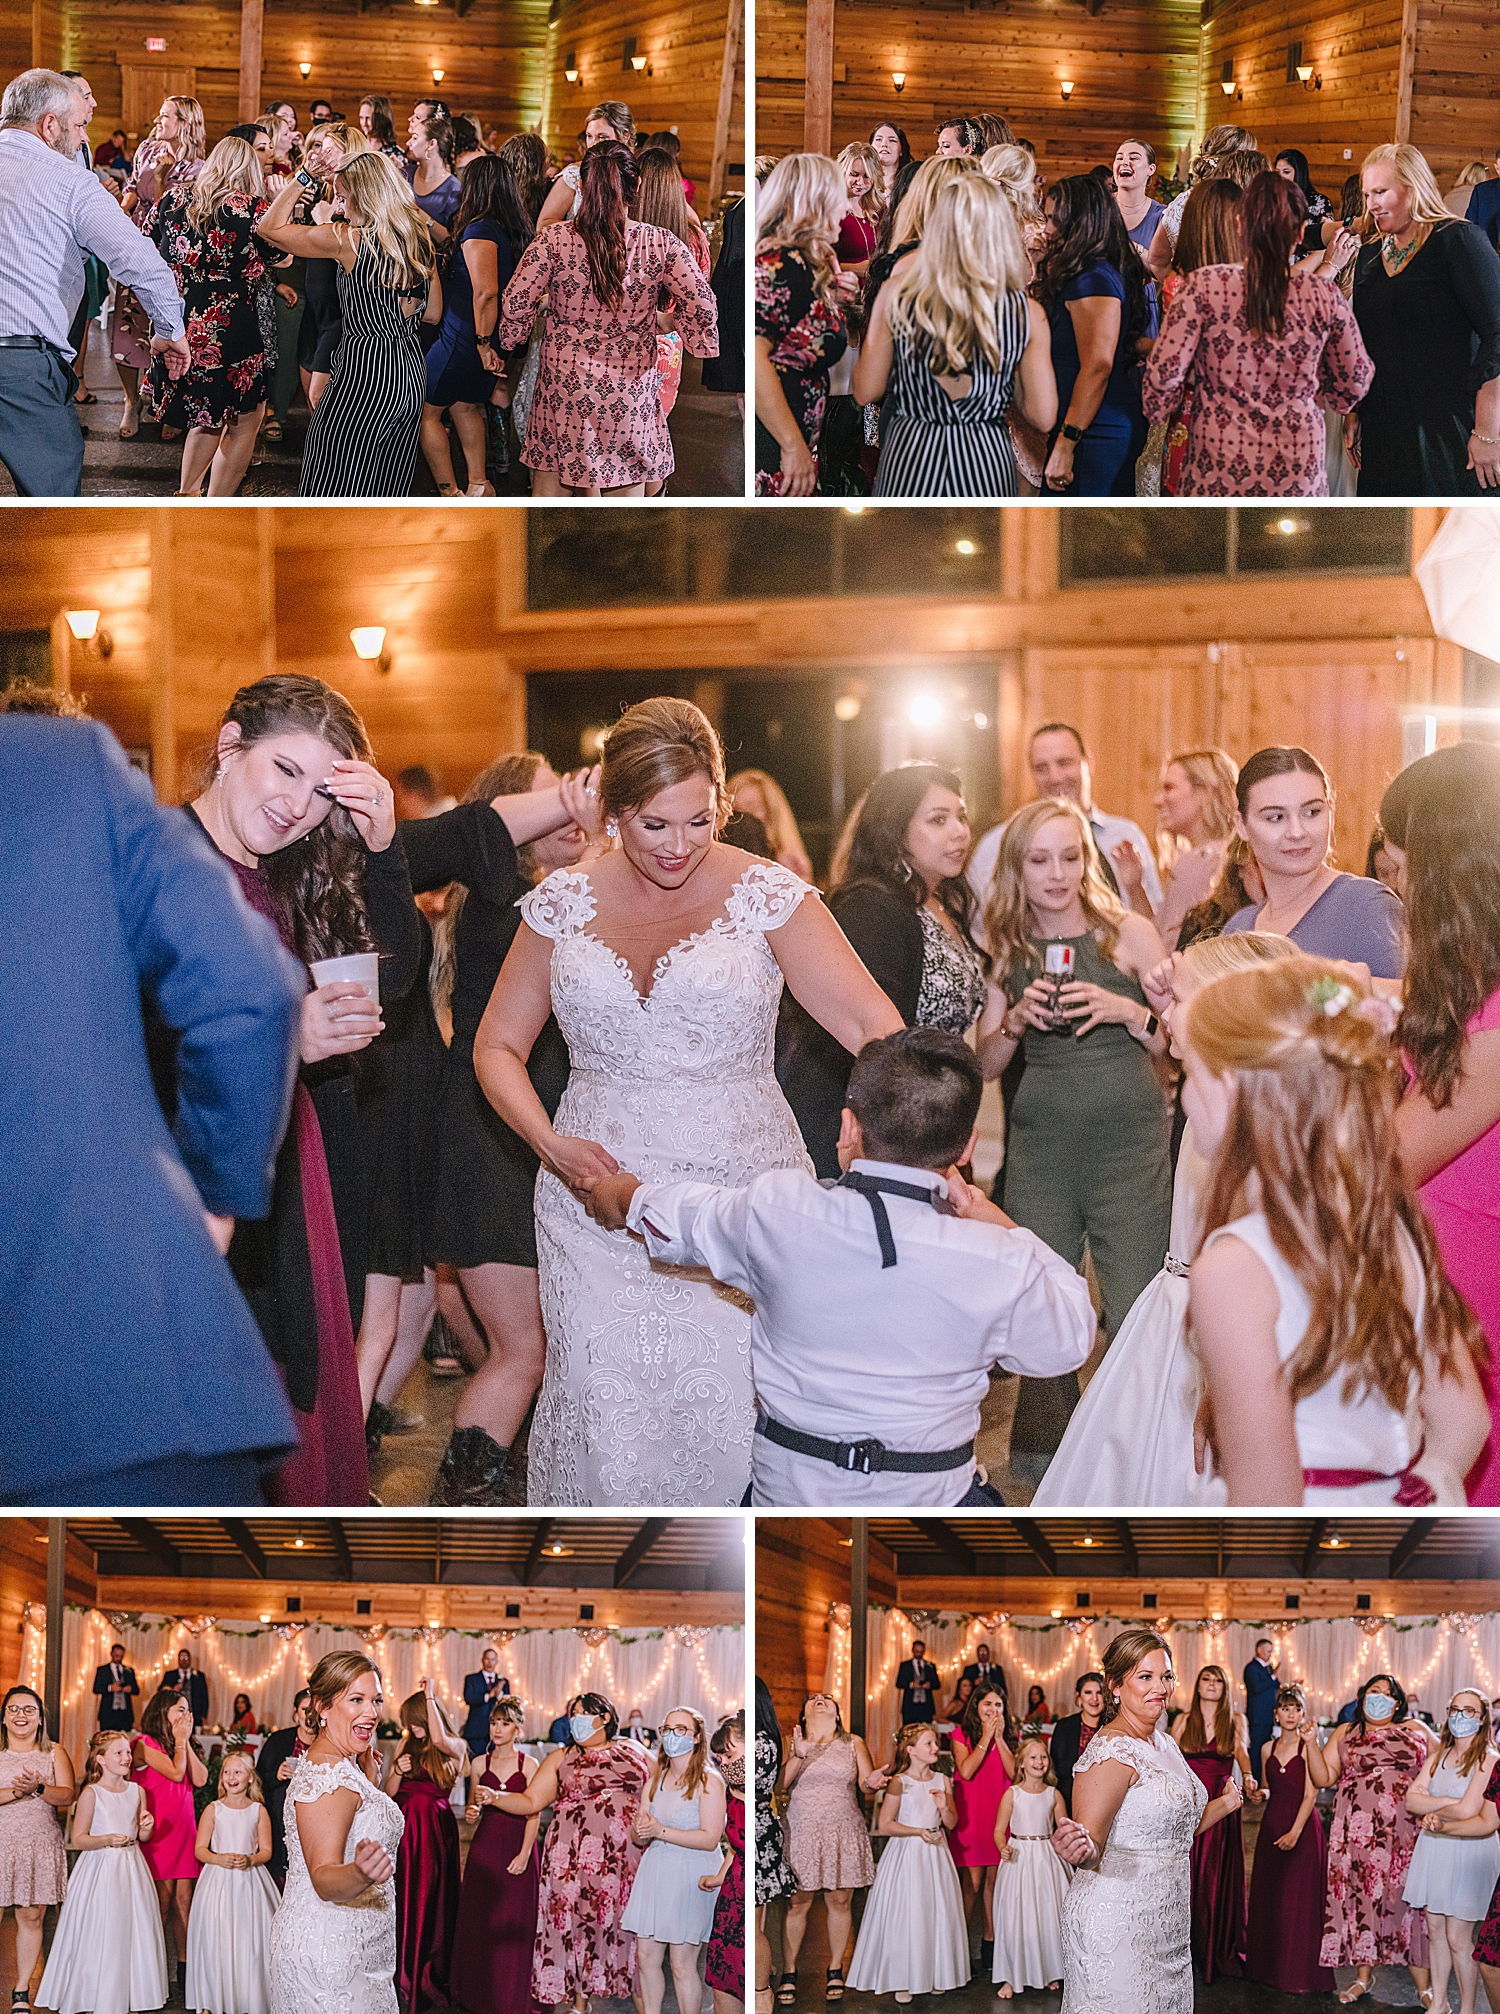 Geronimo-Oaks-Wedding-Venue-Seguin-Texas-Elegant-Navy-Burgundy-Wedding-Carly-Barton-Photography_0075.jpg